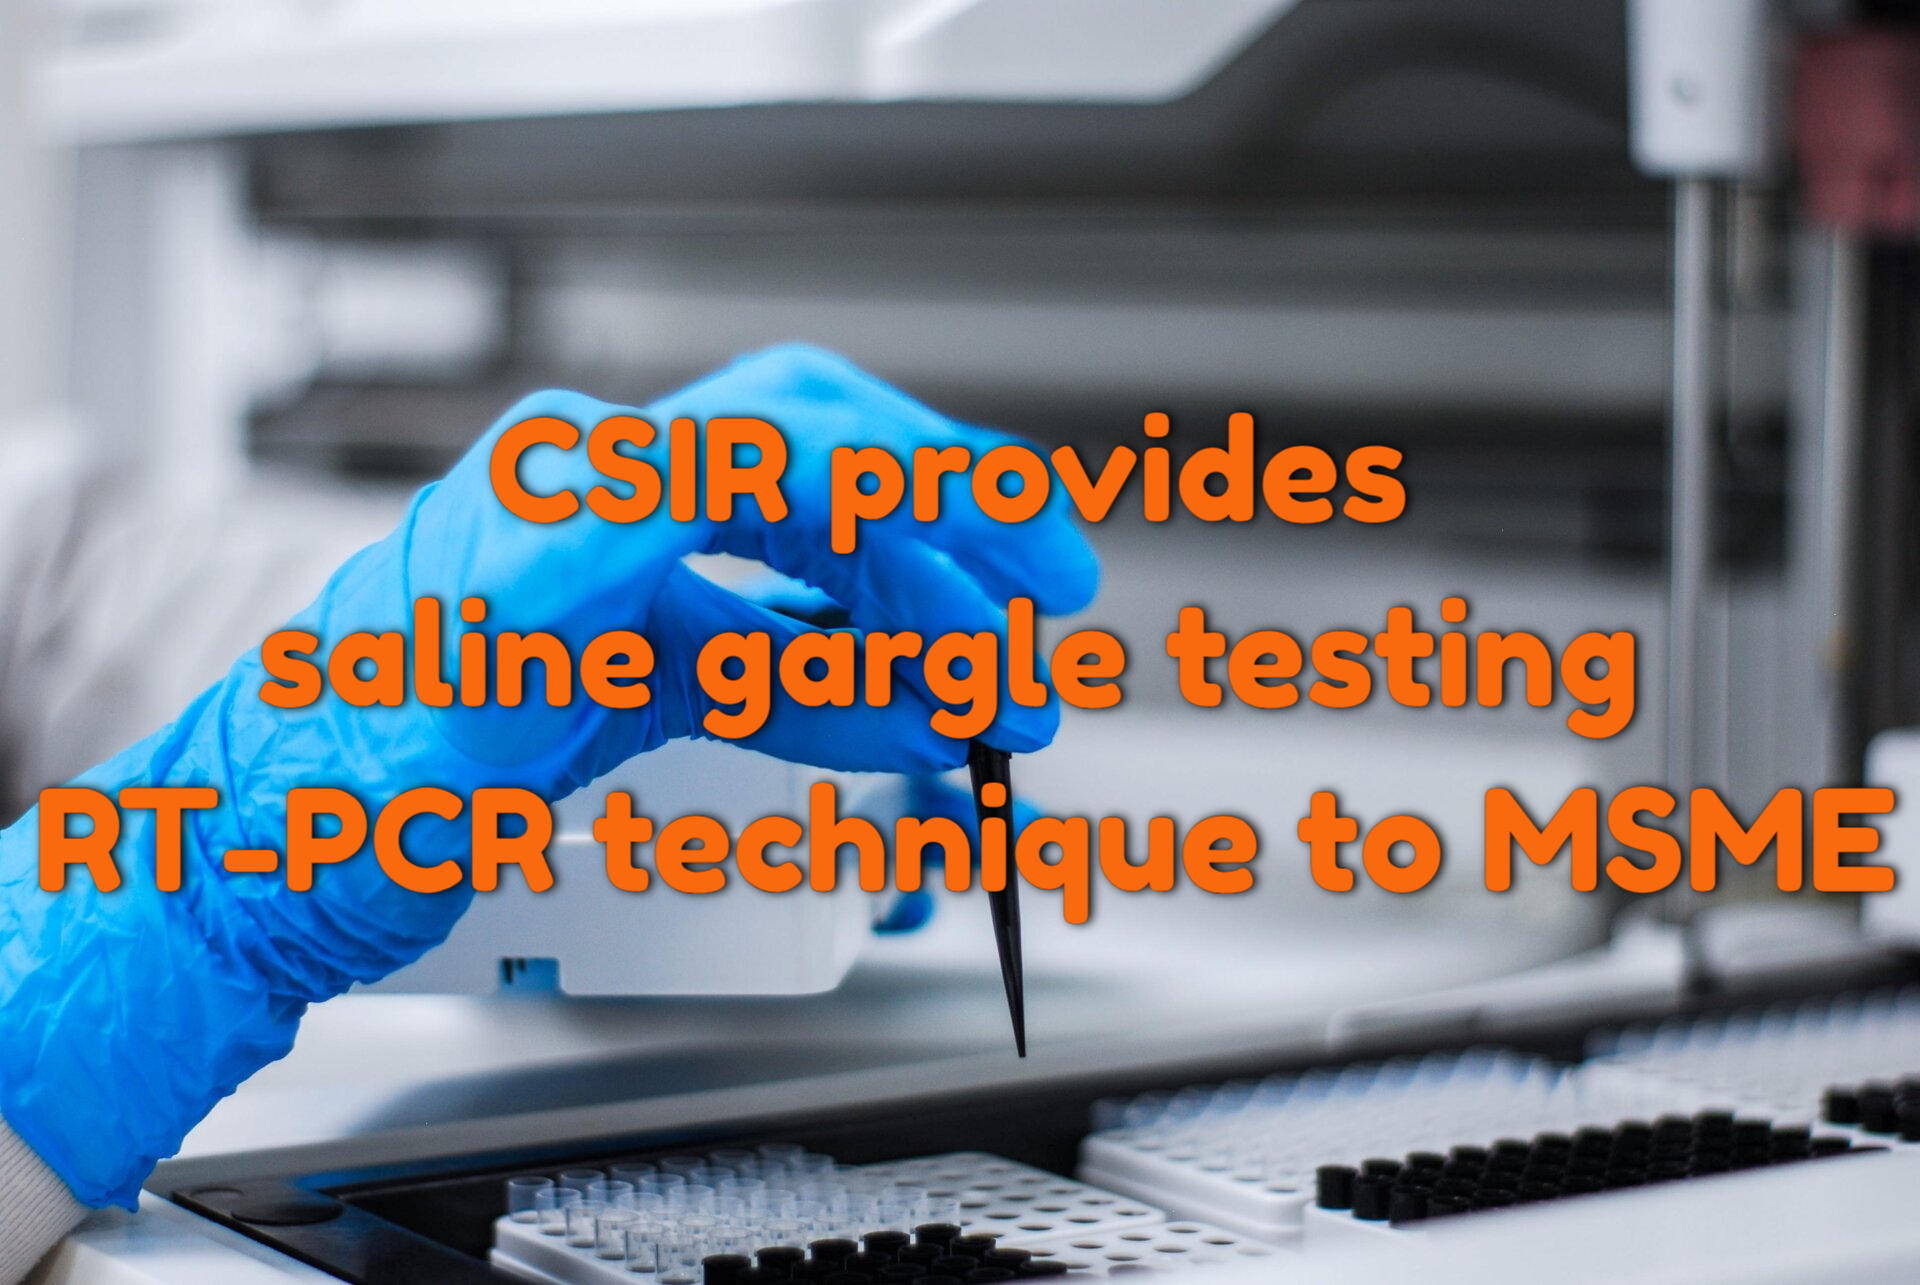 CSIR transfers RT-PCR technology for saline gargle testing to MSME industry